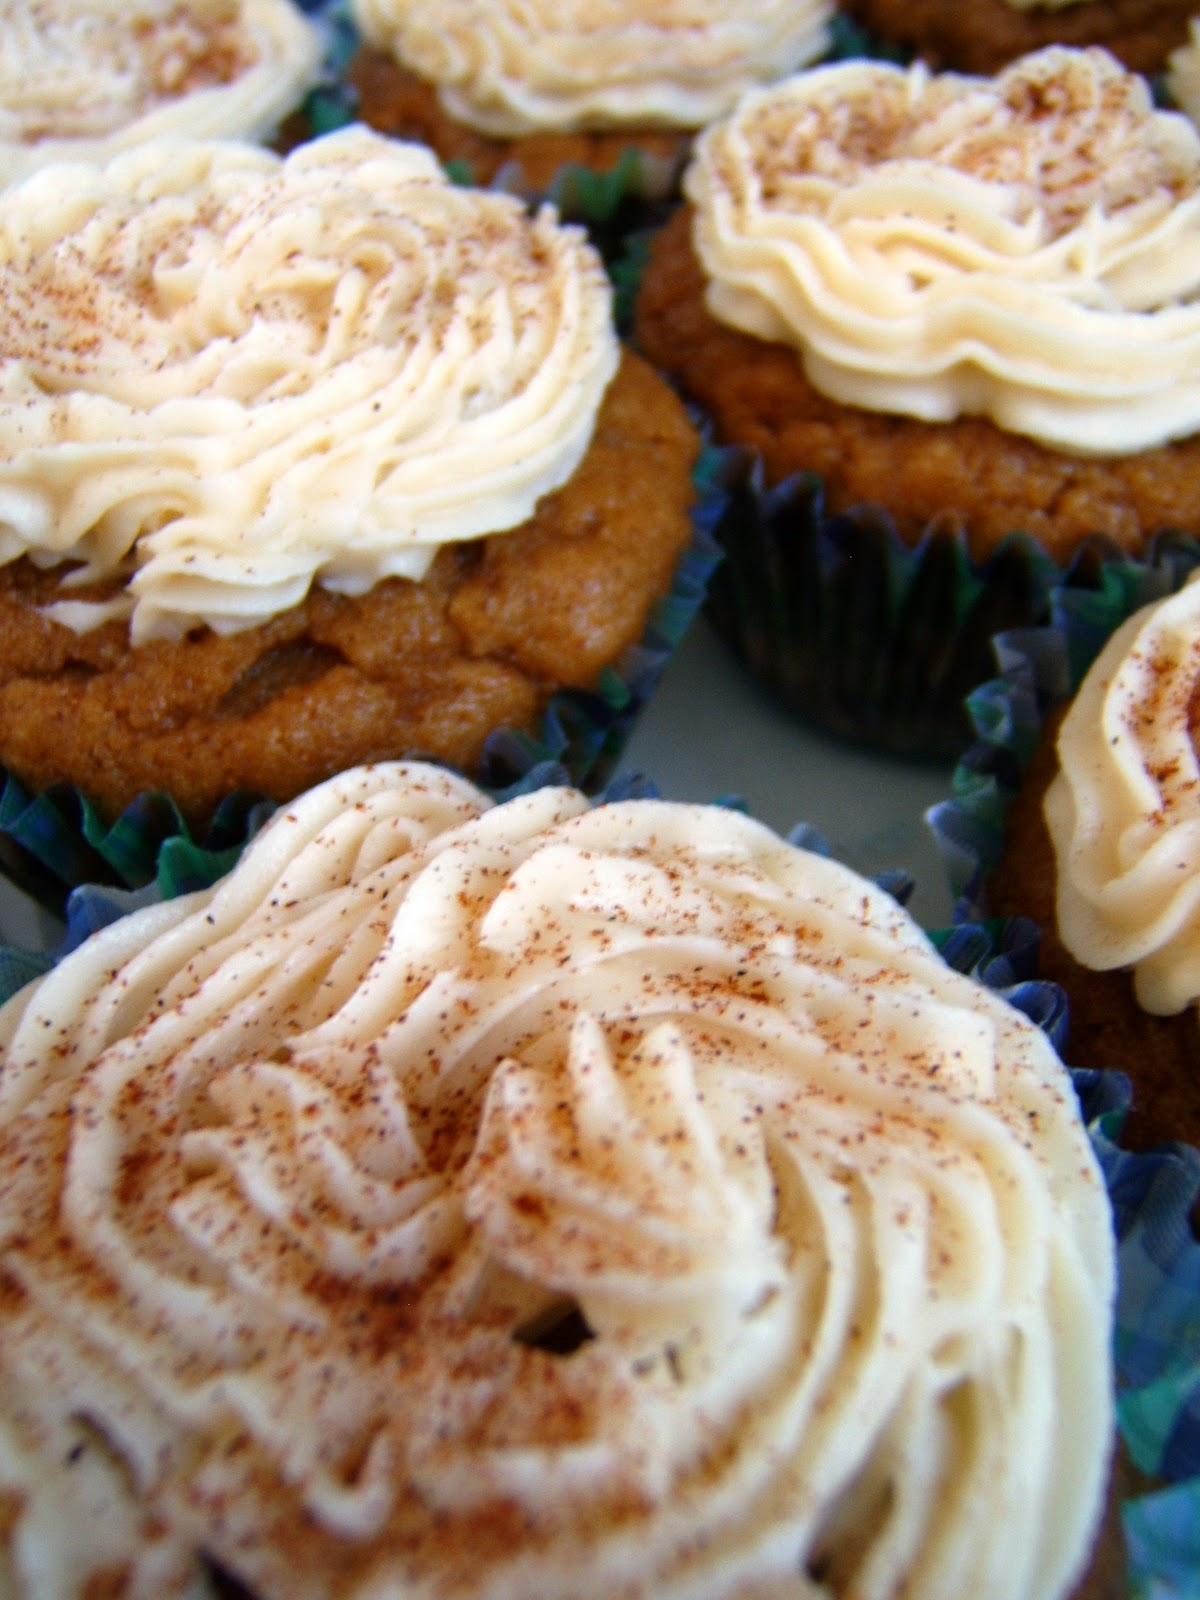 ... : Ginger-Pumpkin Cupcakes with Maple-Vanilla Buttercream Frosting